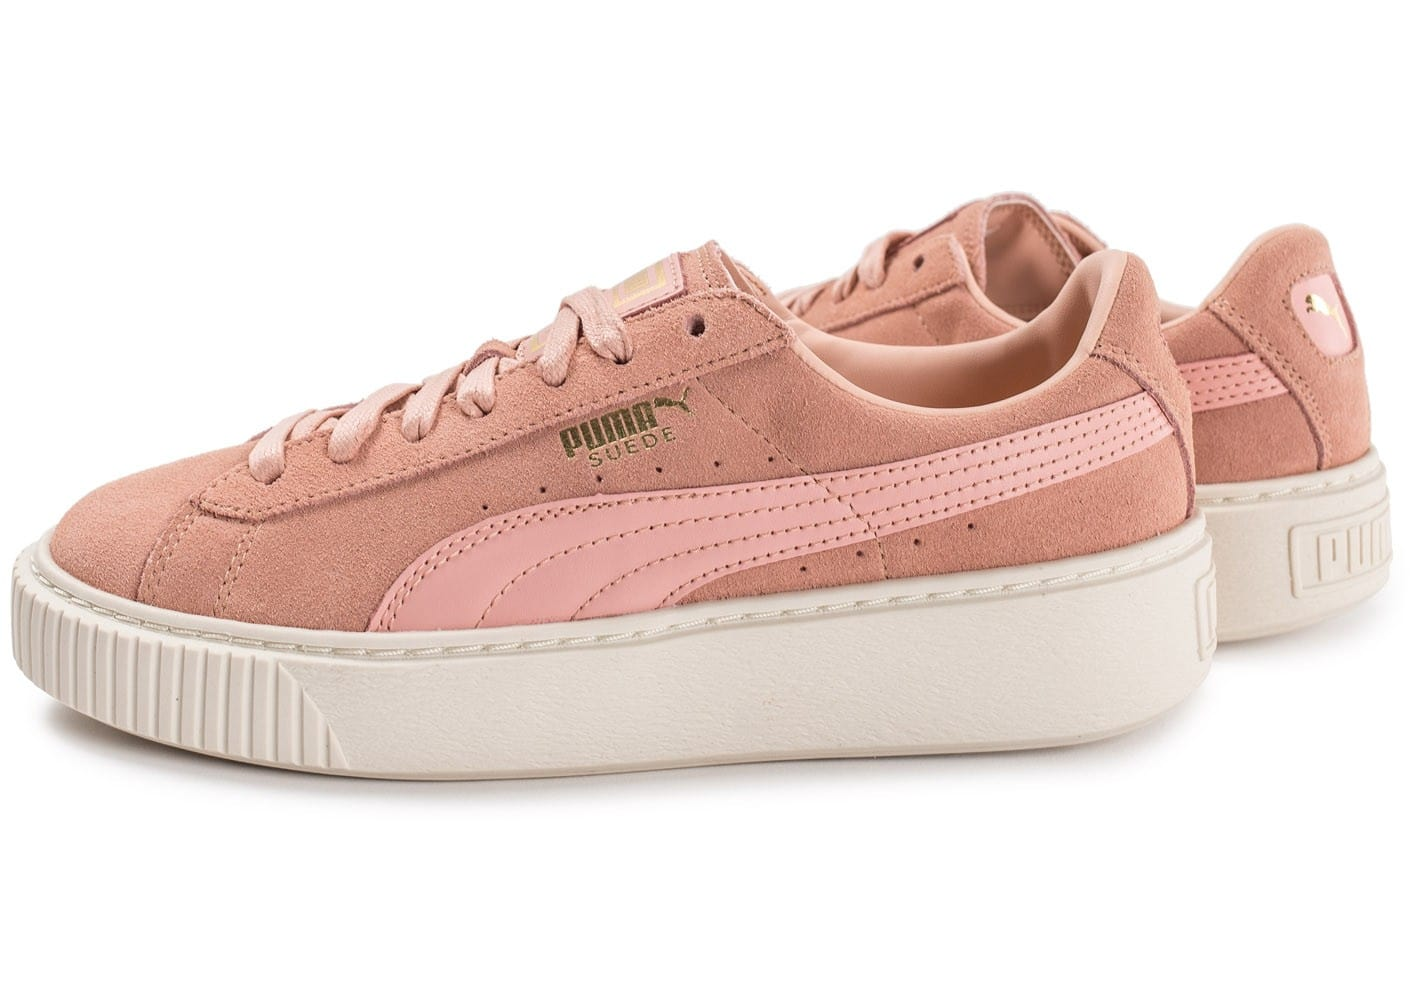 Chaussures Puma Suede roses Fashion femme GdP7AFcOqX